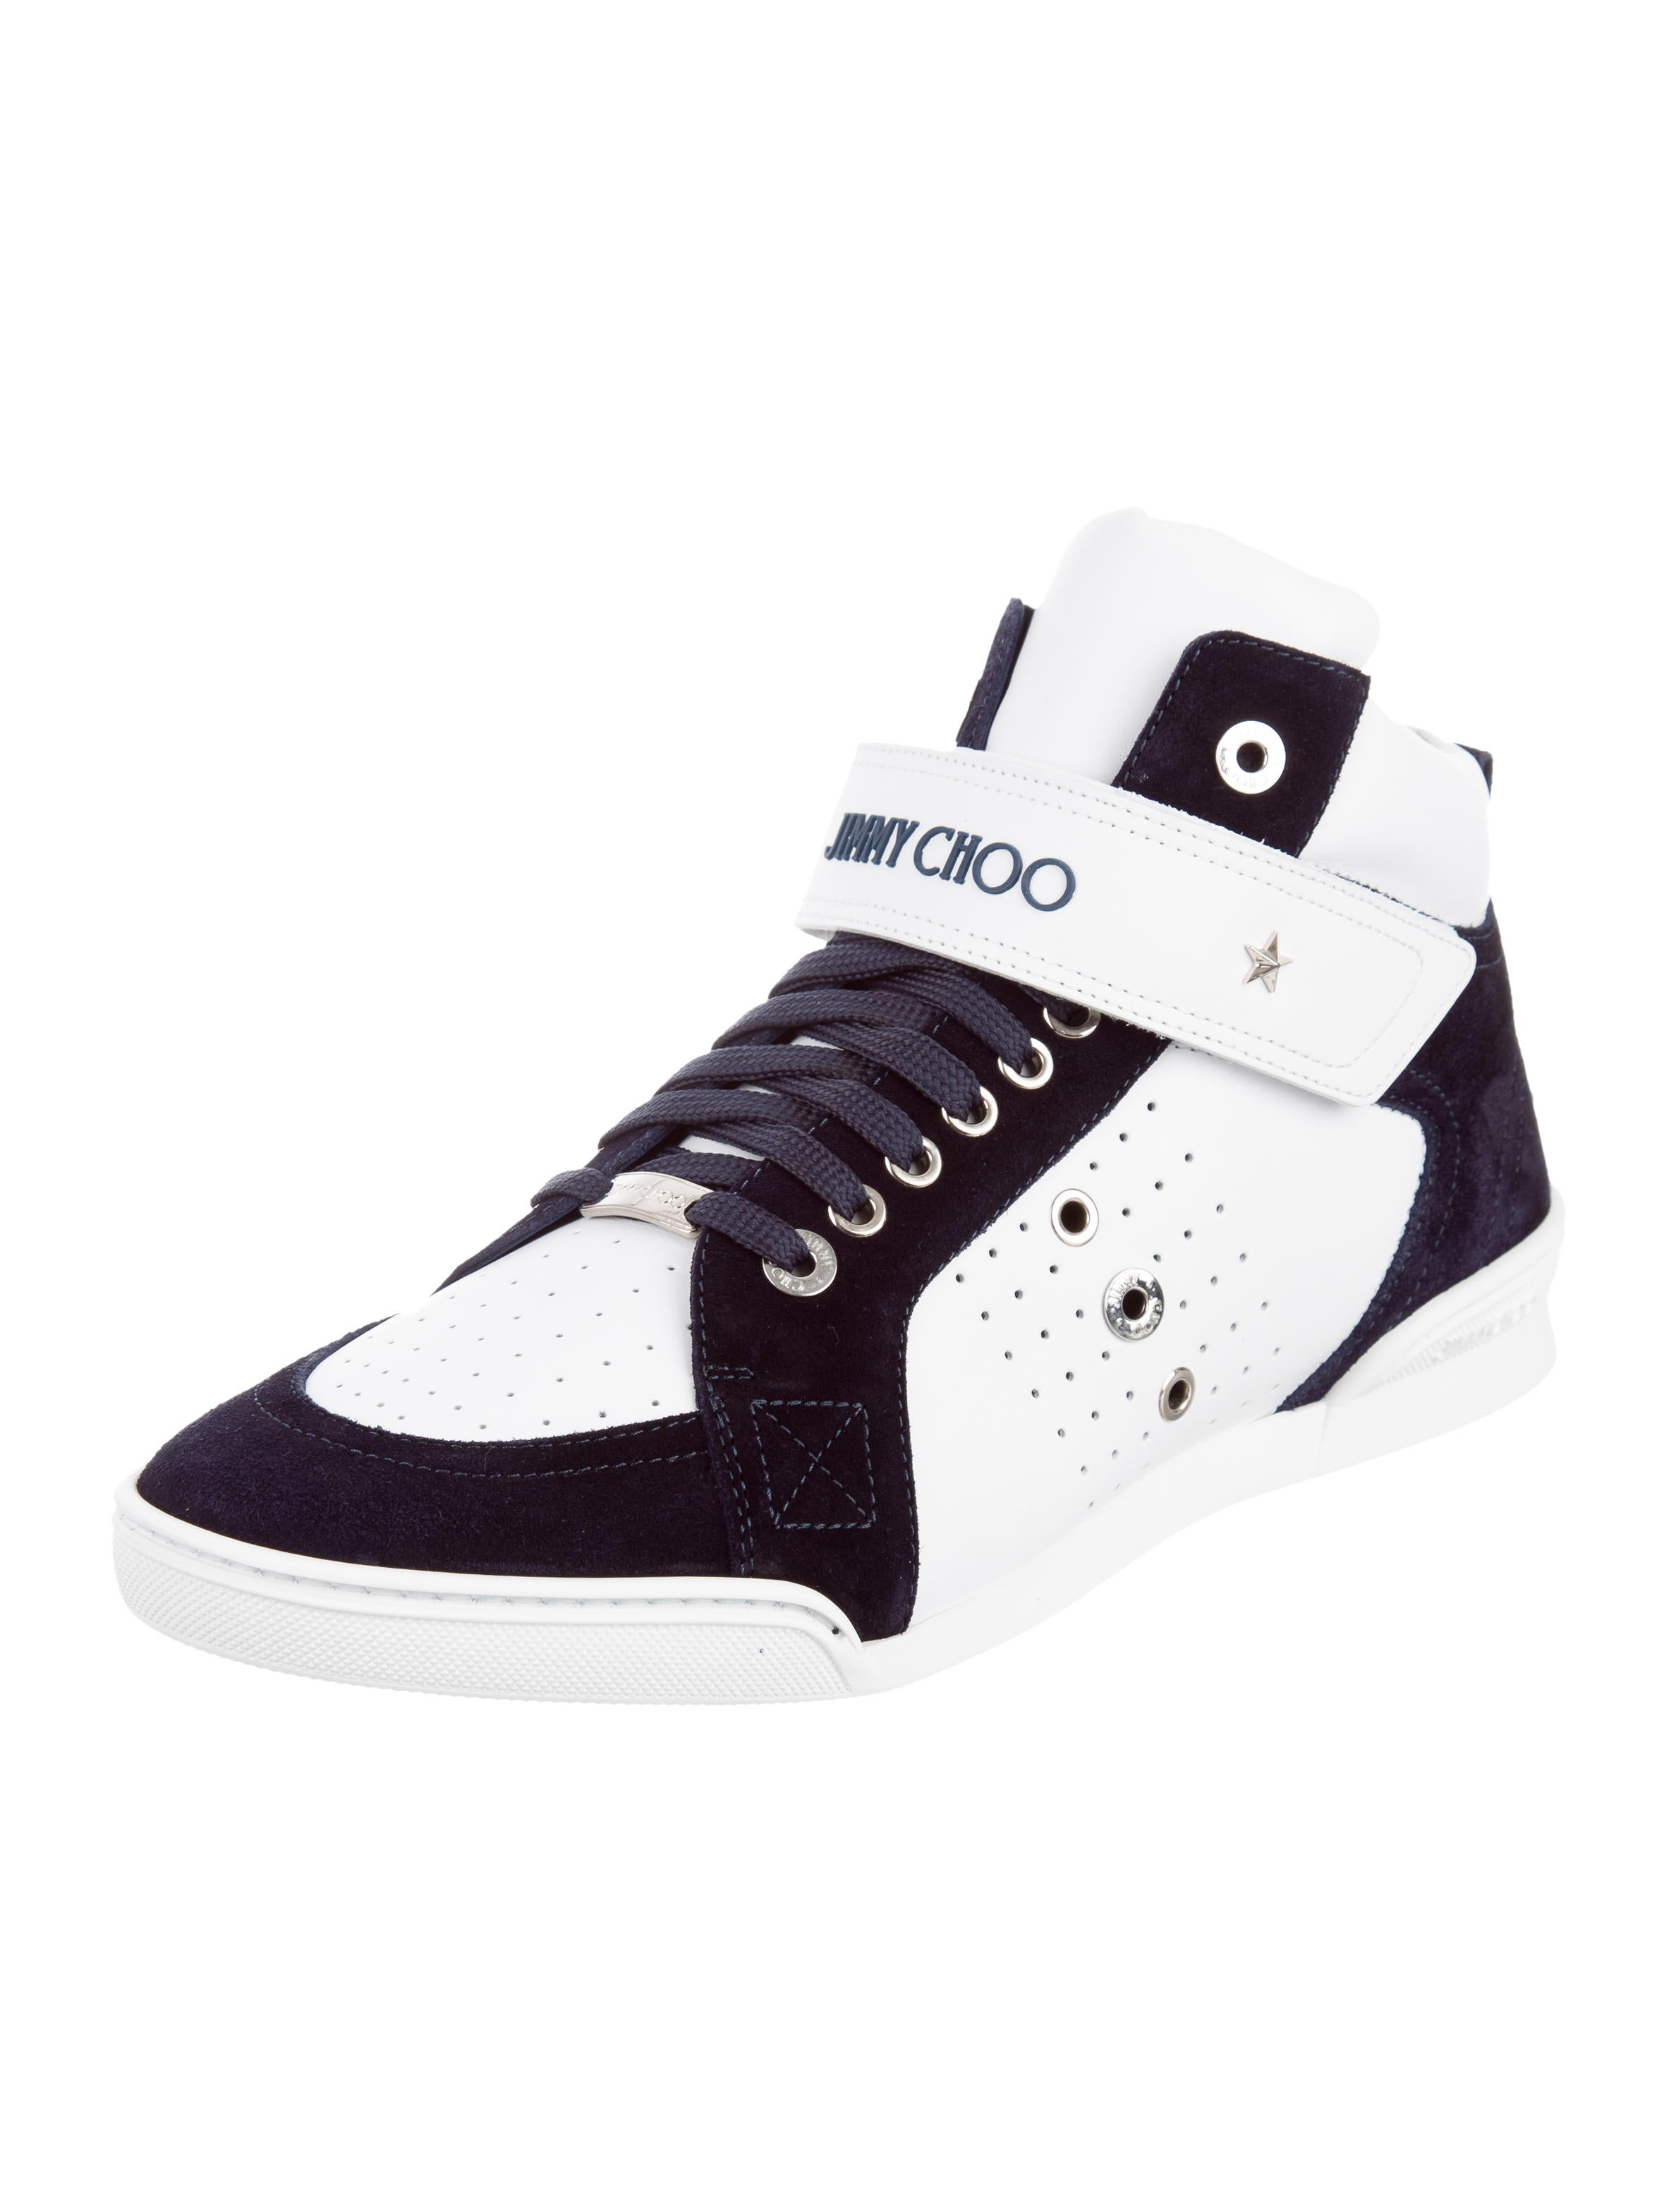 jimmy choo lewis leather sneakers w tags shoes jim63007 the realreal. Black Bedroom Furniture Sets. Home Design Ideas